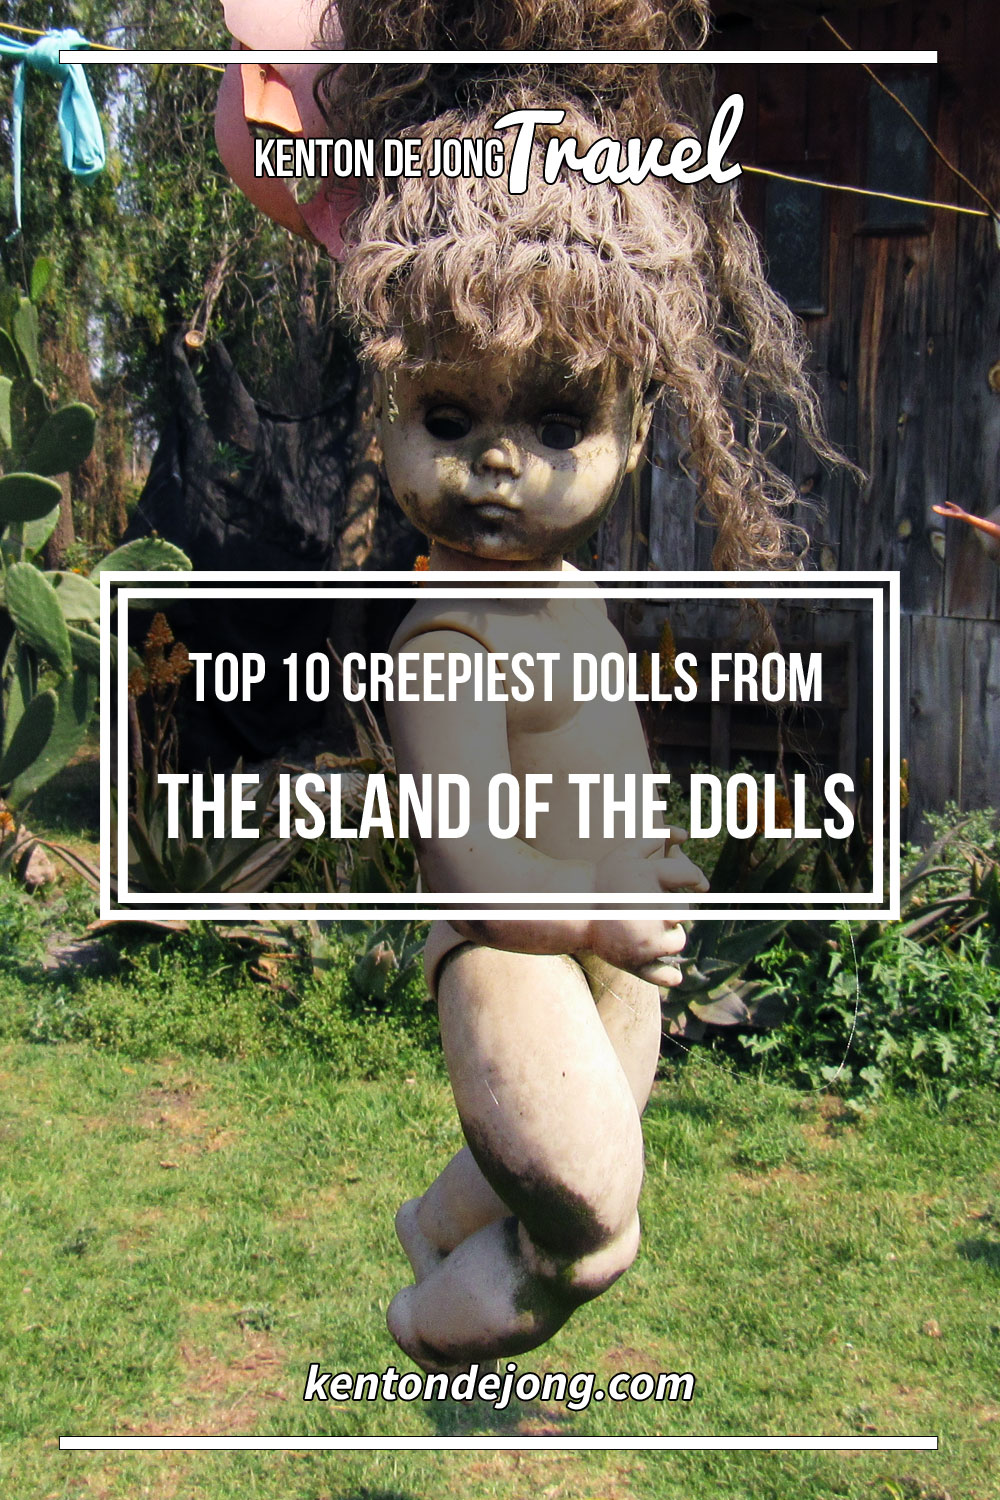 Top 10 Creepiest Dolls From The Island of the Dolls